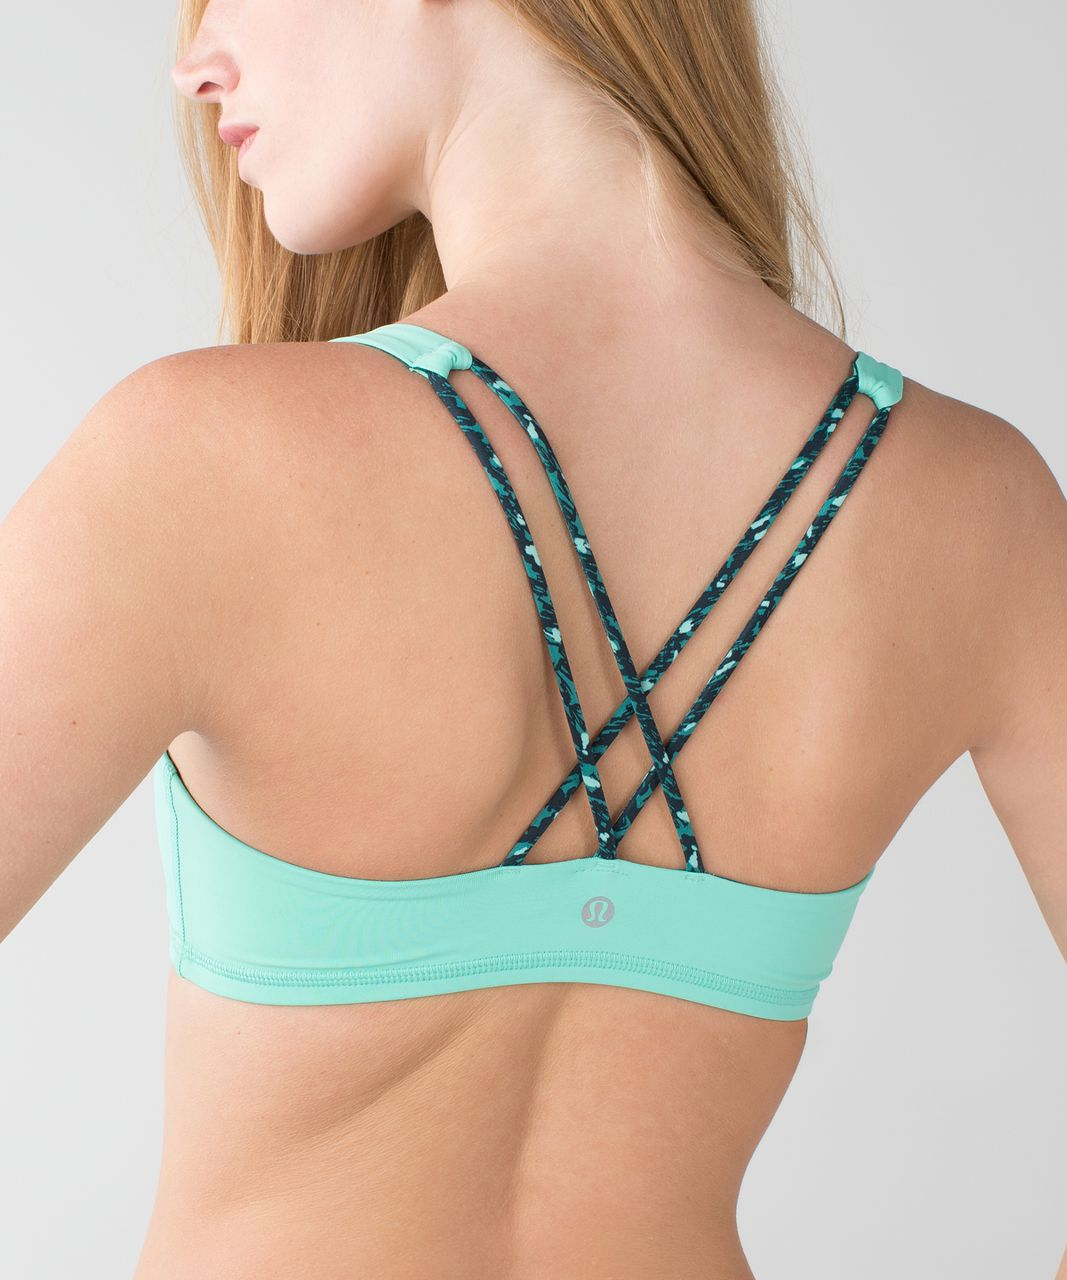 Lululemon Free To Be Bra - Menthol / Mountain Peaks Black Forage Teal / Forage Teal